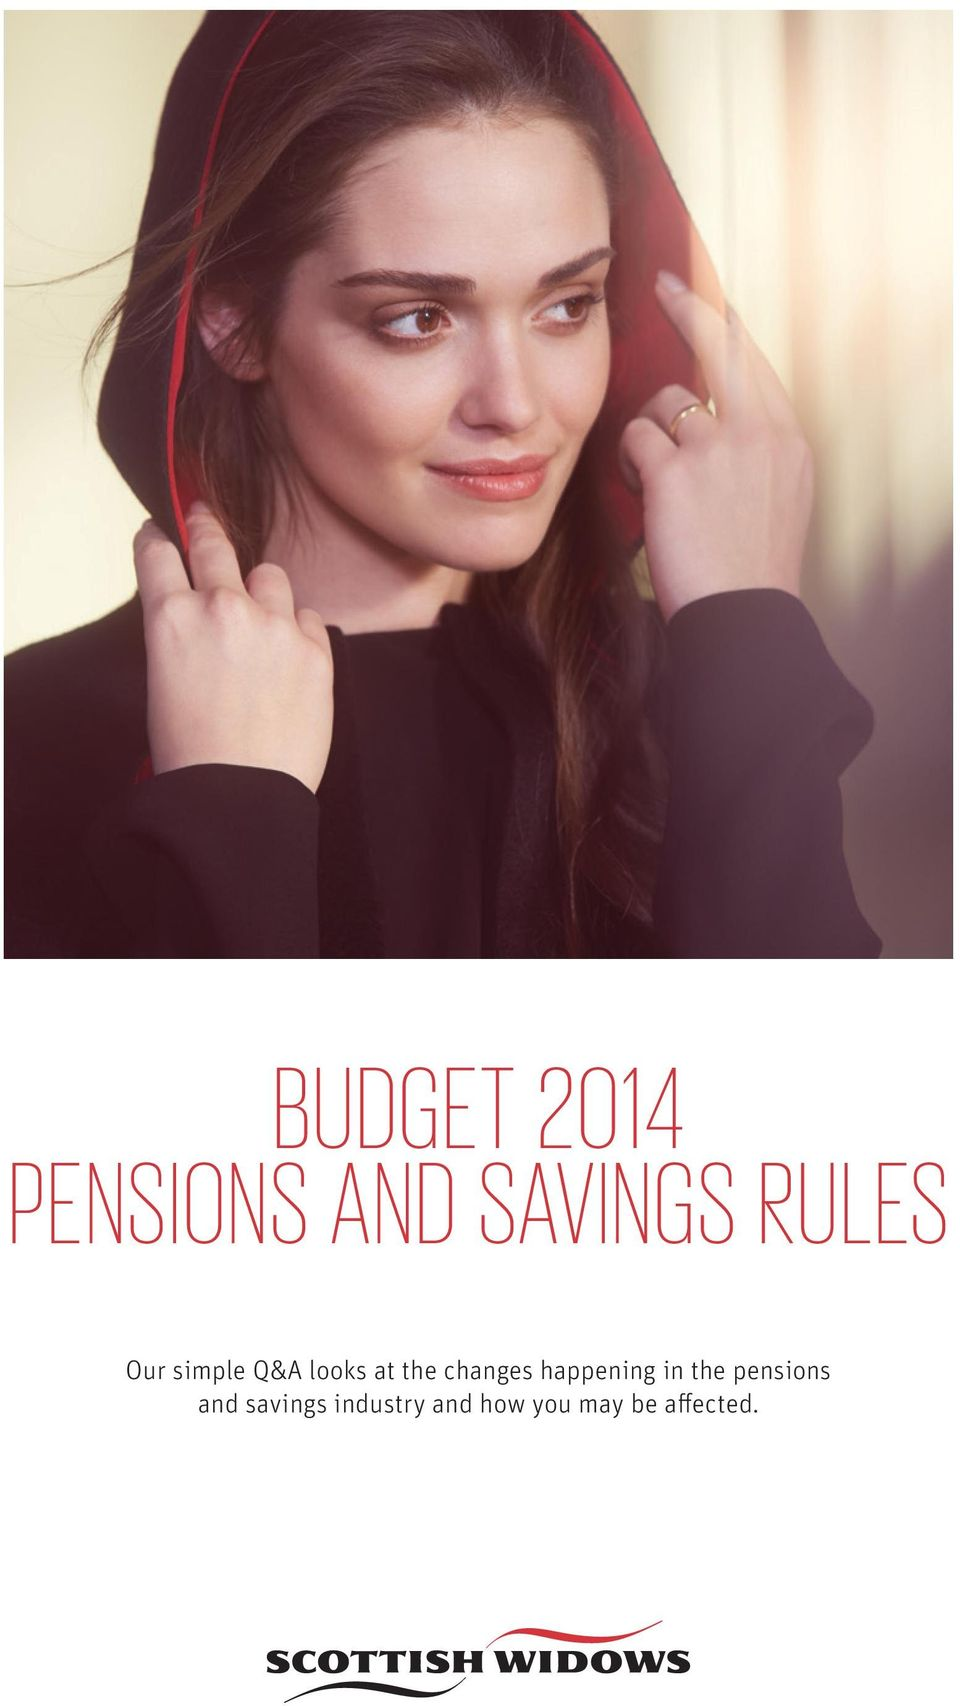 changes happening in the pensions and